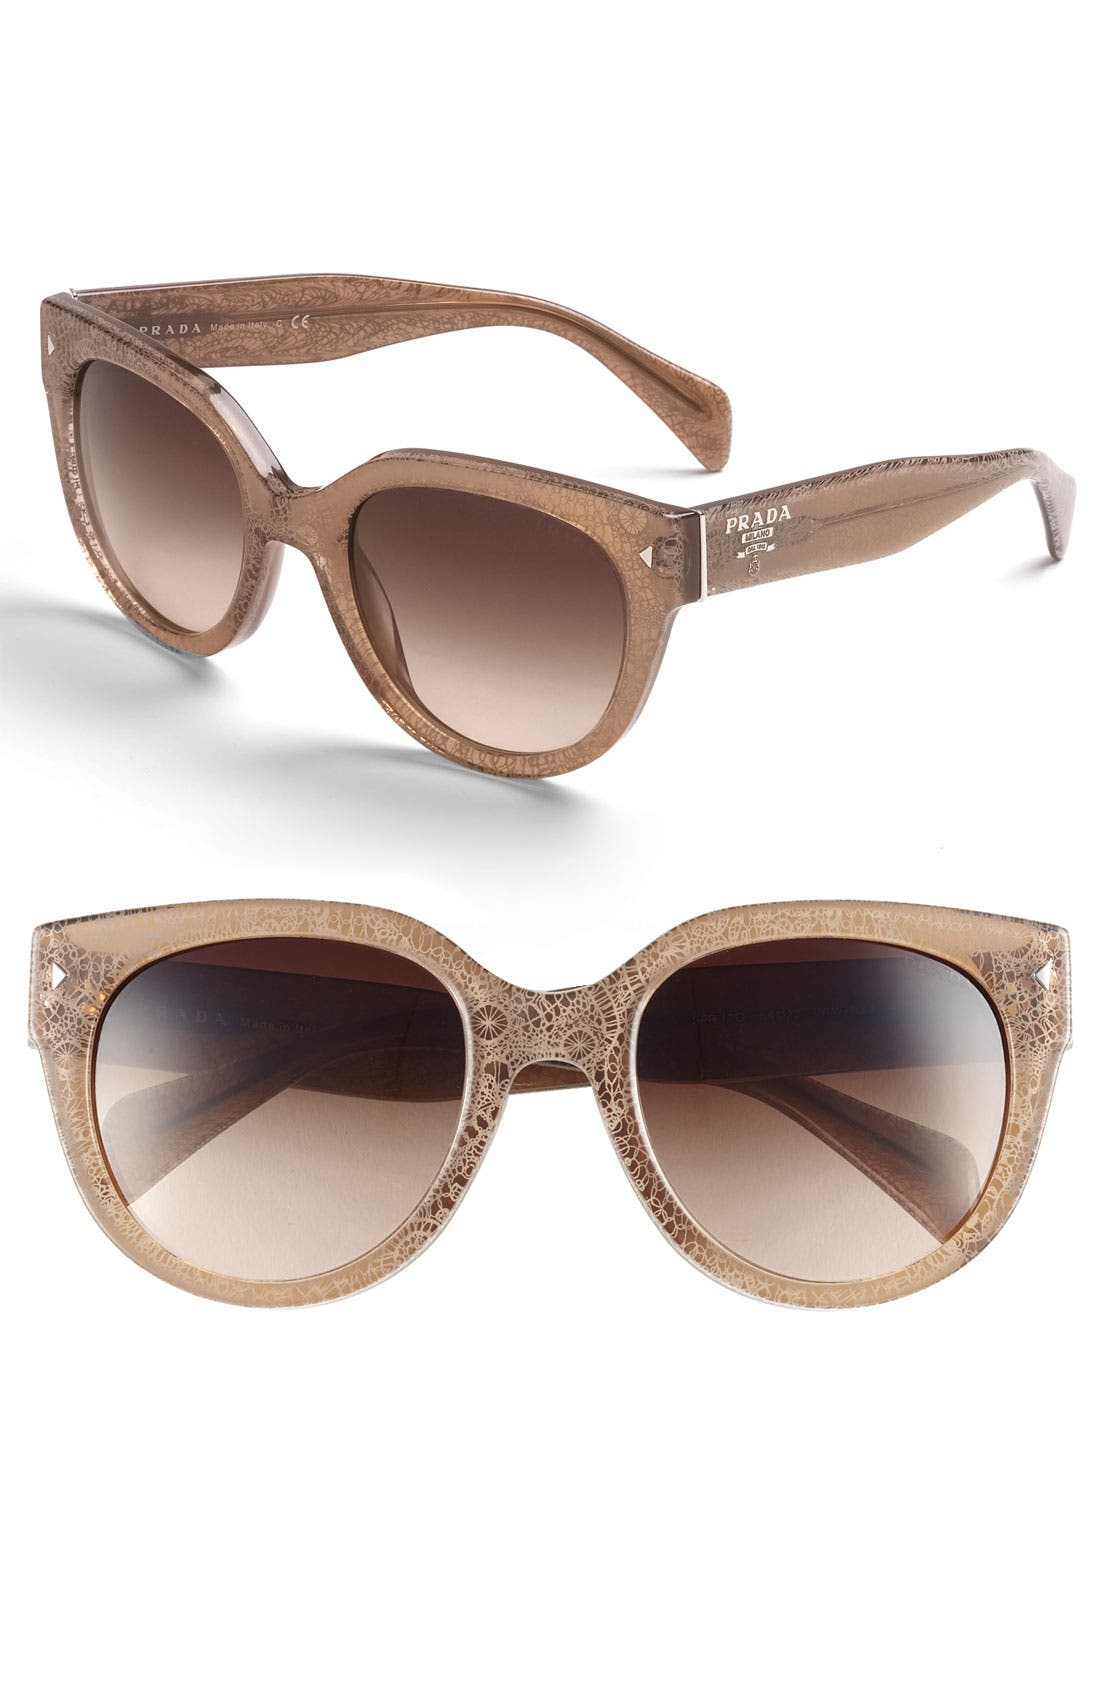 Alternate Image 1 Selected - Prada 54mm Cat Eye Sunglasses